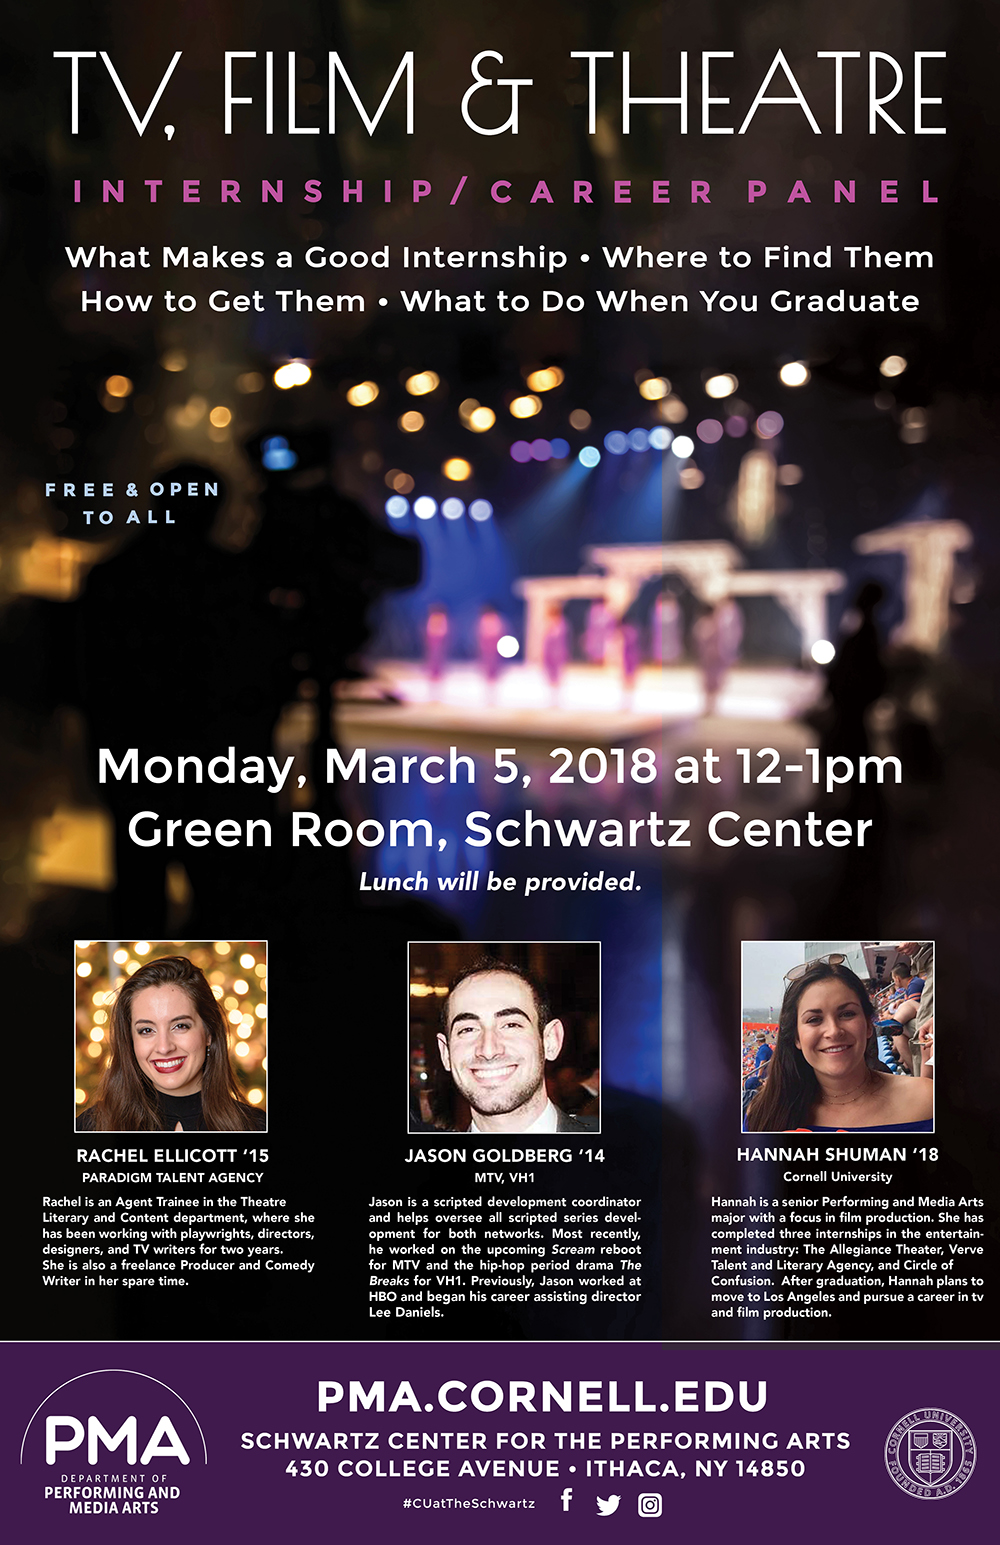 TV, Film & Theatre Internship/Career Panel